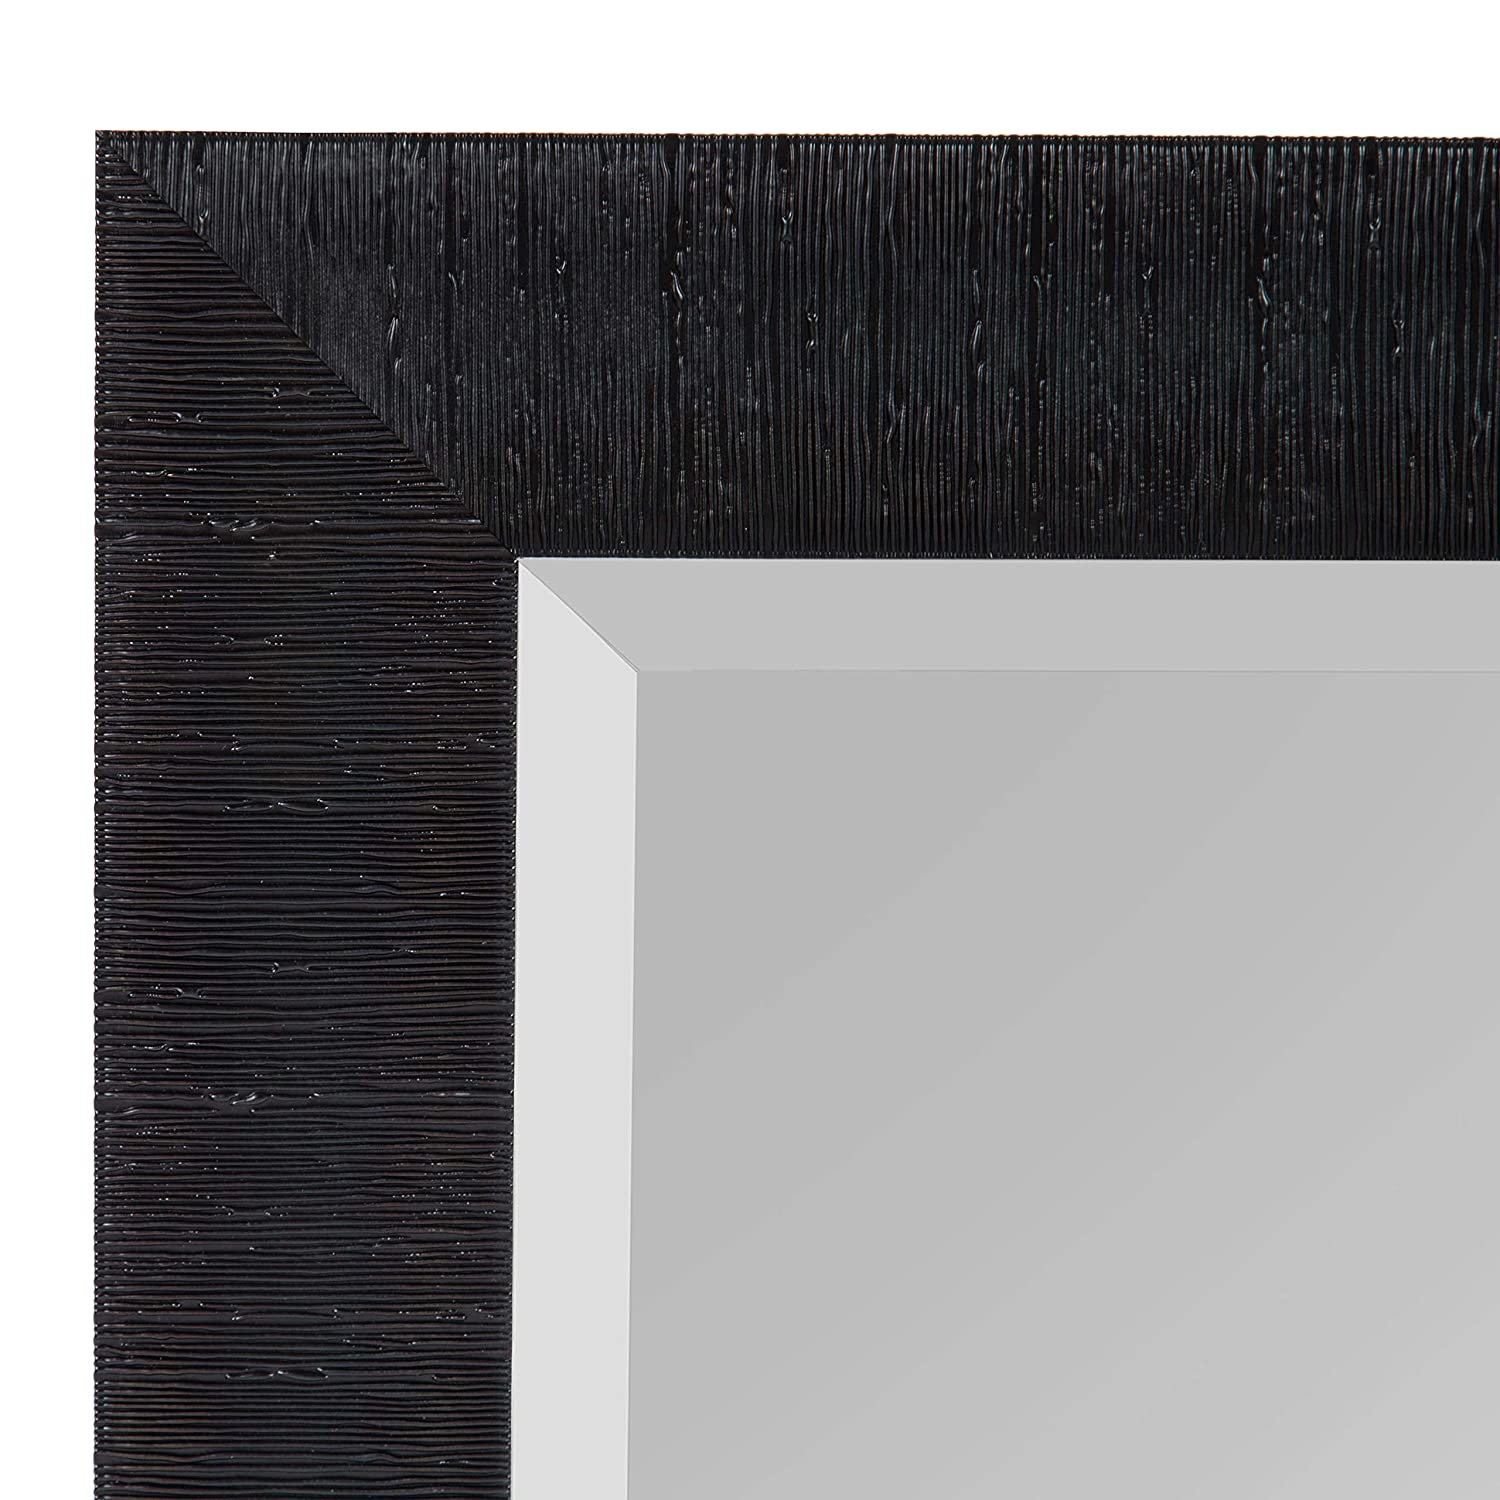 Kate and Laurel Reyna Framed Wall Mirror, 29.75×41.75, Black